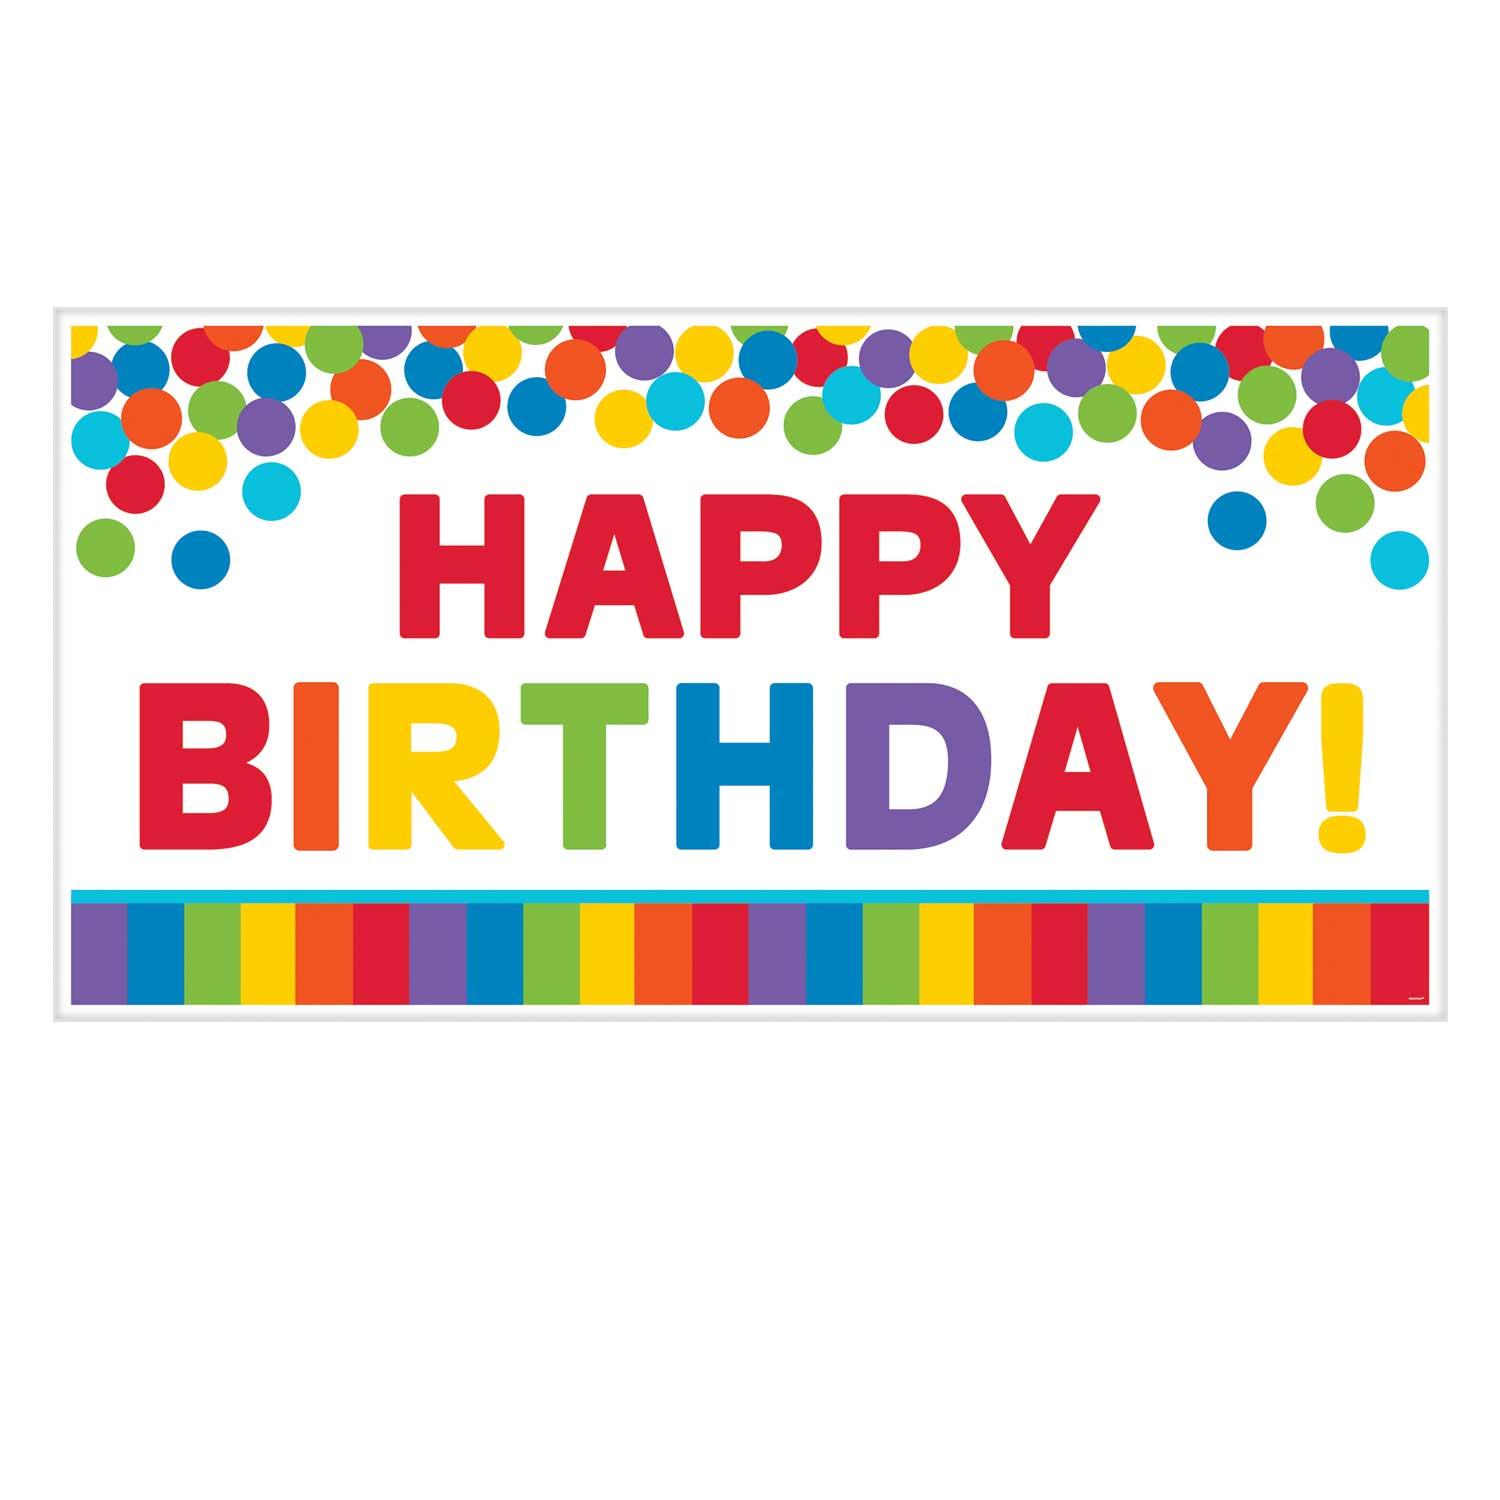 Home Decorator Collection Primary Rainbow Happy Birthday Giant Party Banners 1 65m X